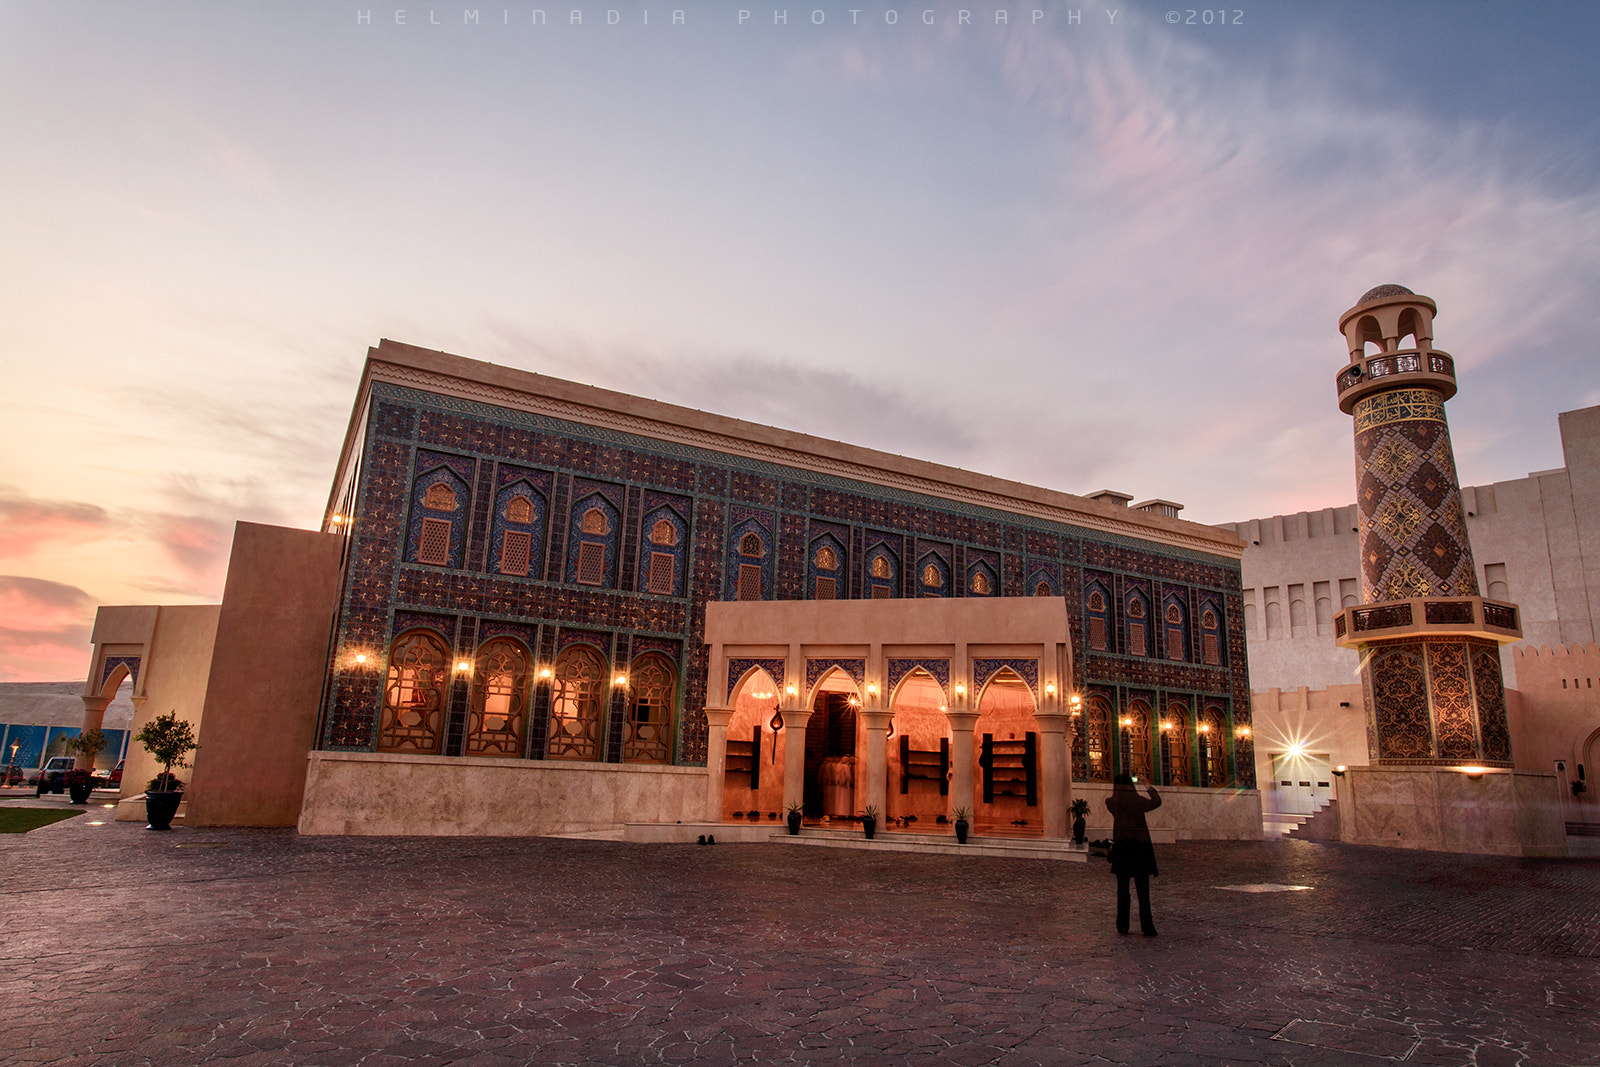 Photograph Katara Mosque by Helminadia Ranford on 500px